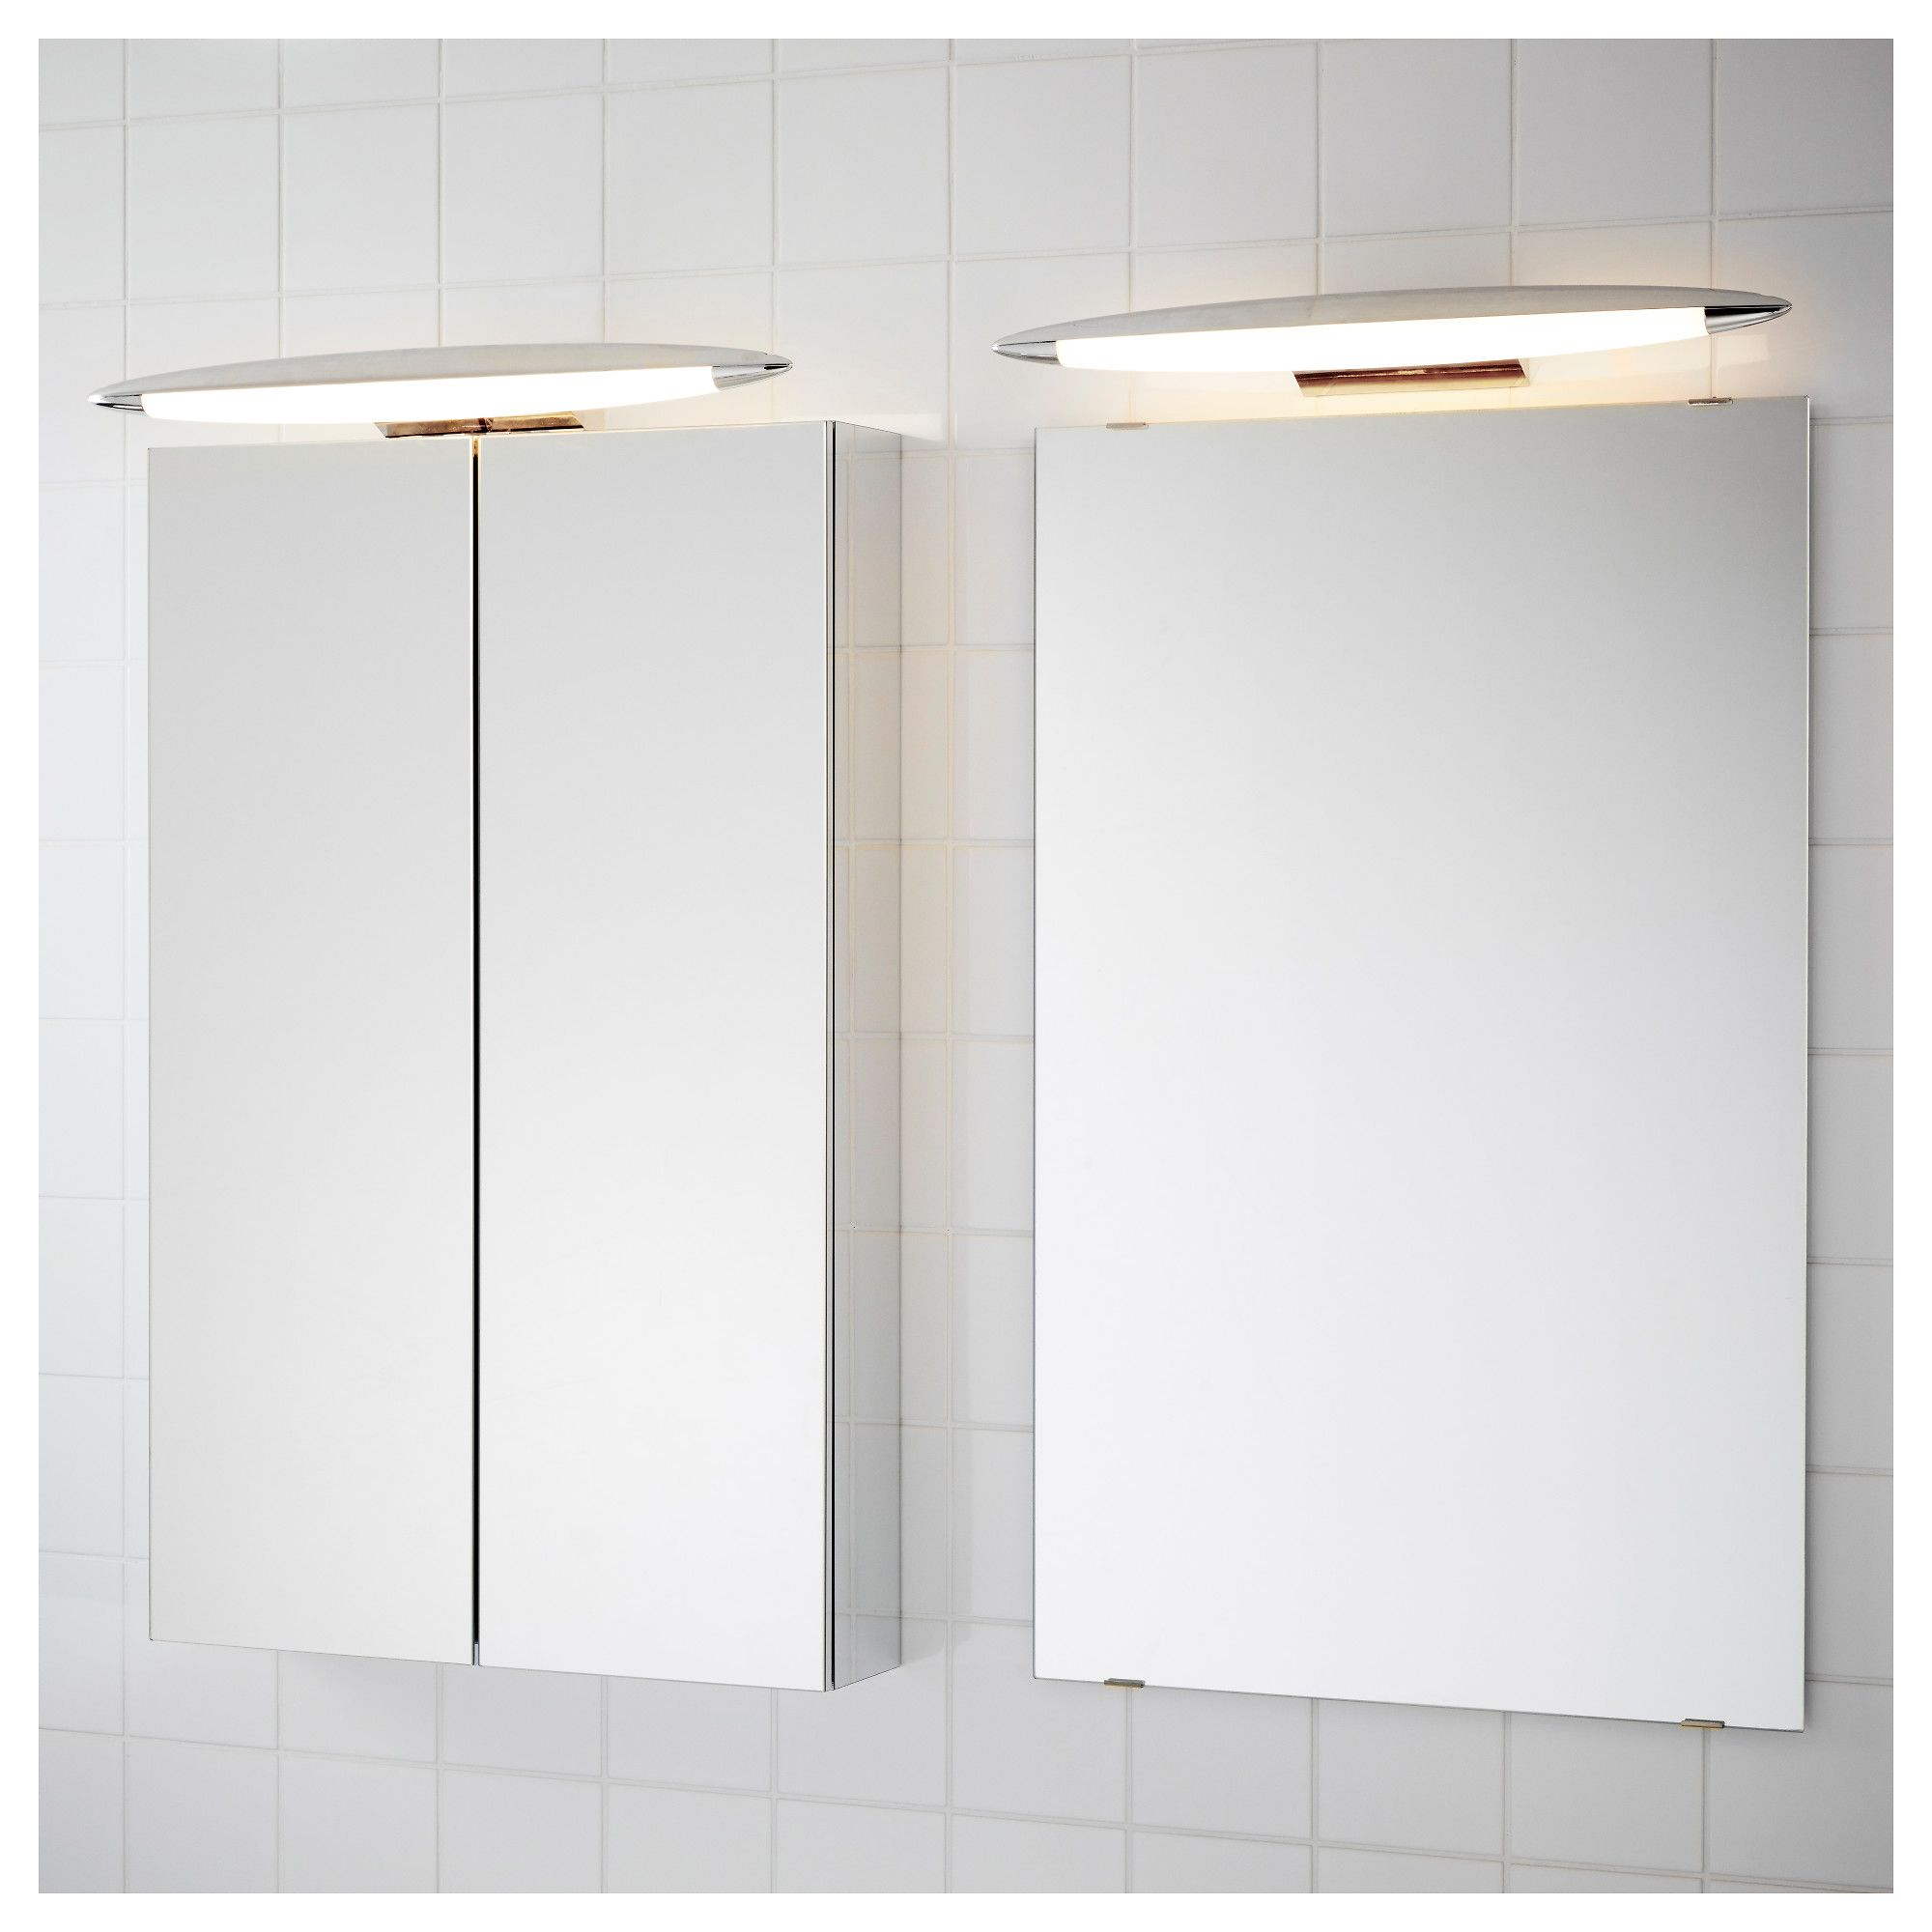 Bathroom Light Fixtures Ikea